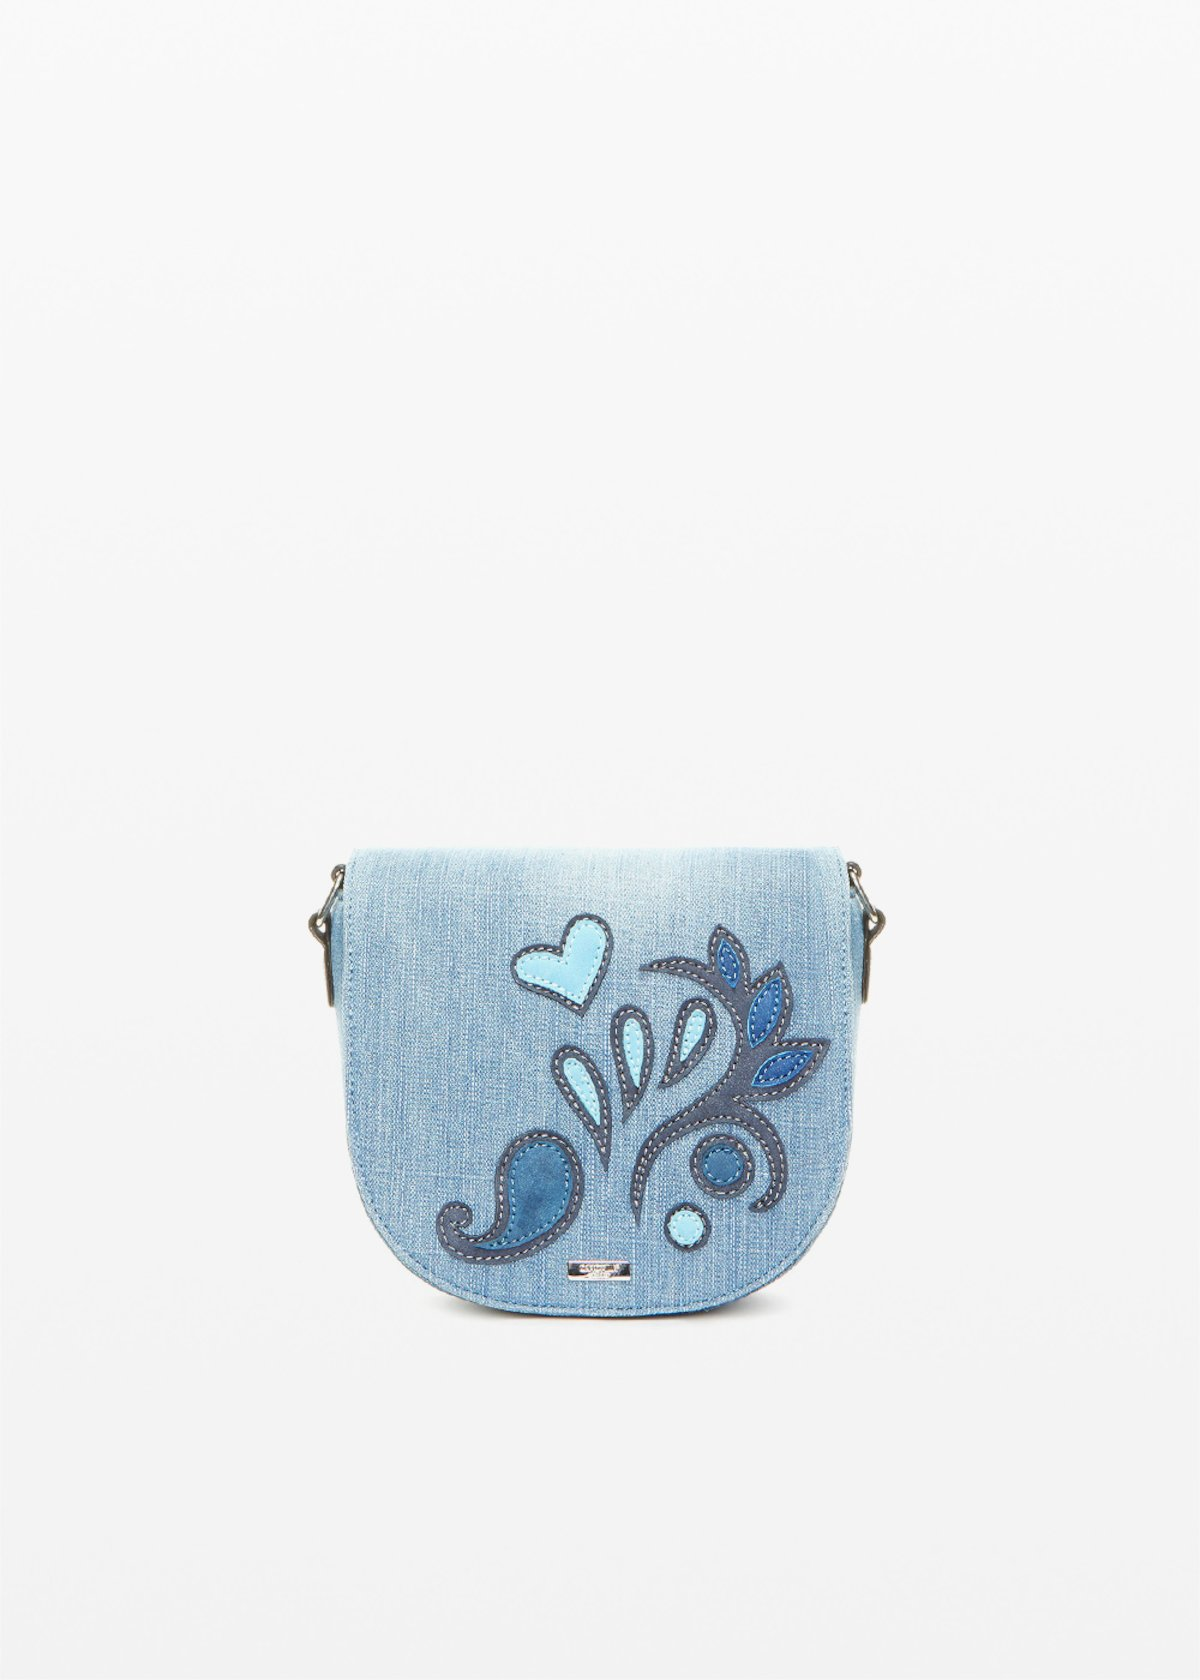 Blerry Crossbody bag denim effect with flower patch - Blue - Woman - Category image